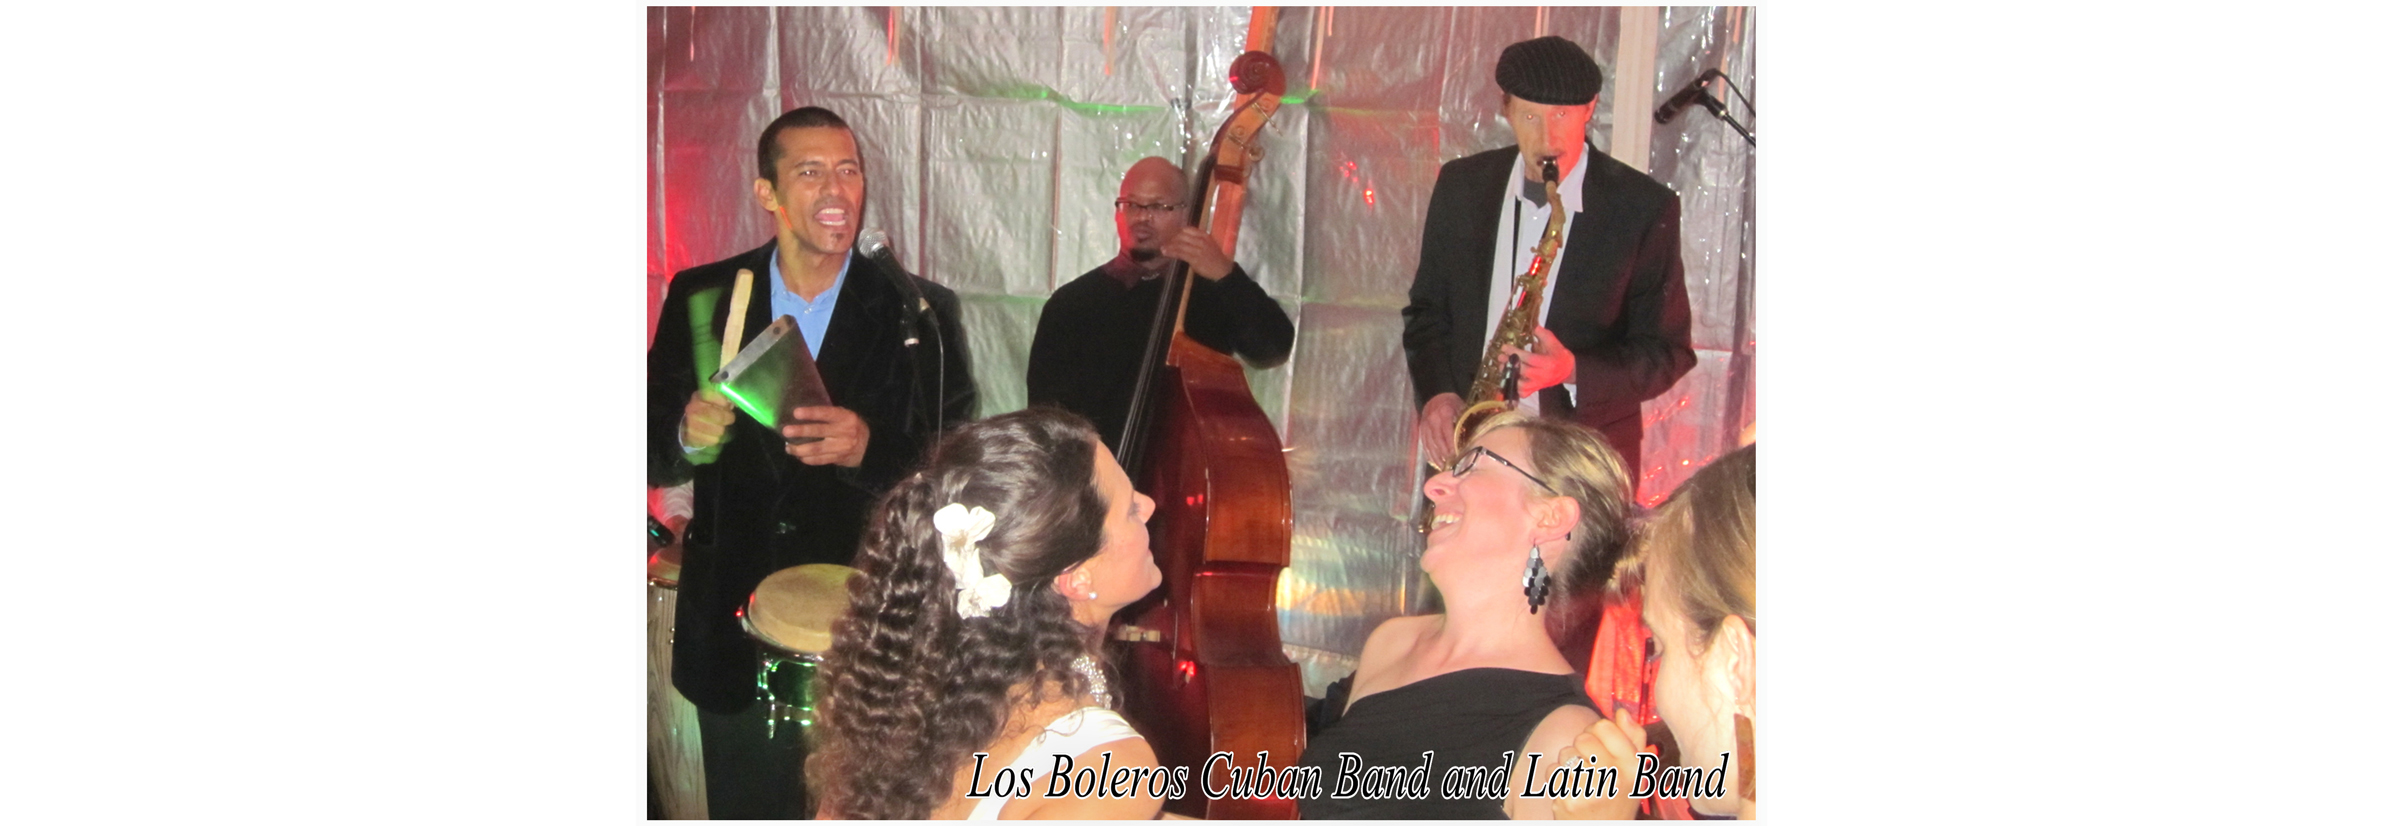 salsa band, cuban music cuban band, Latin music Latin band, salsa music